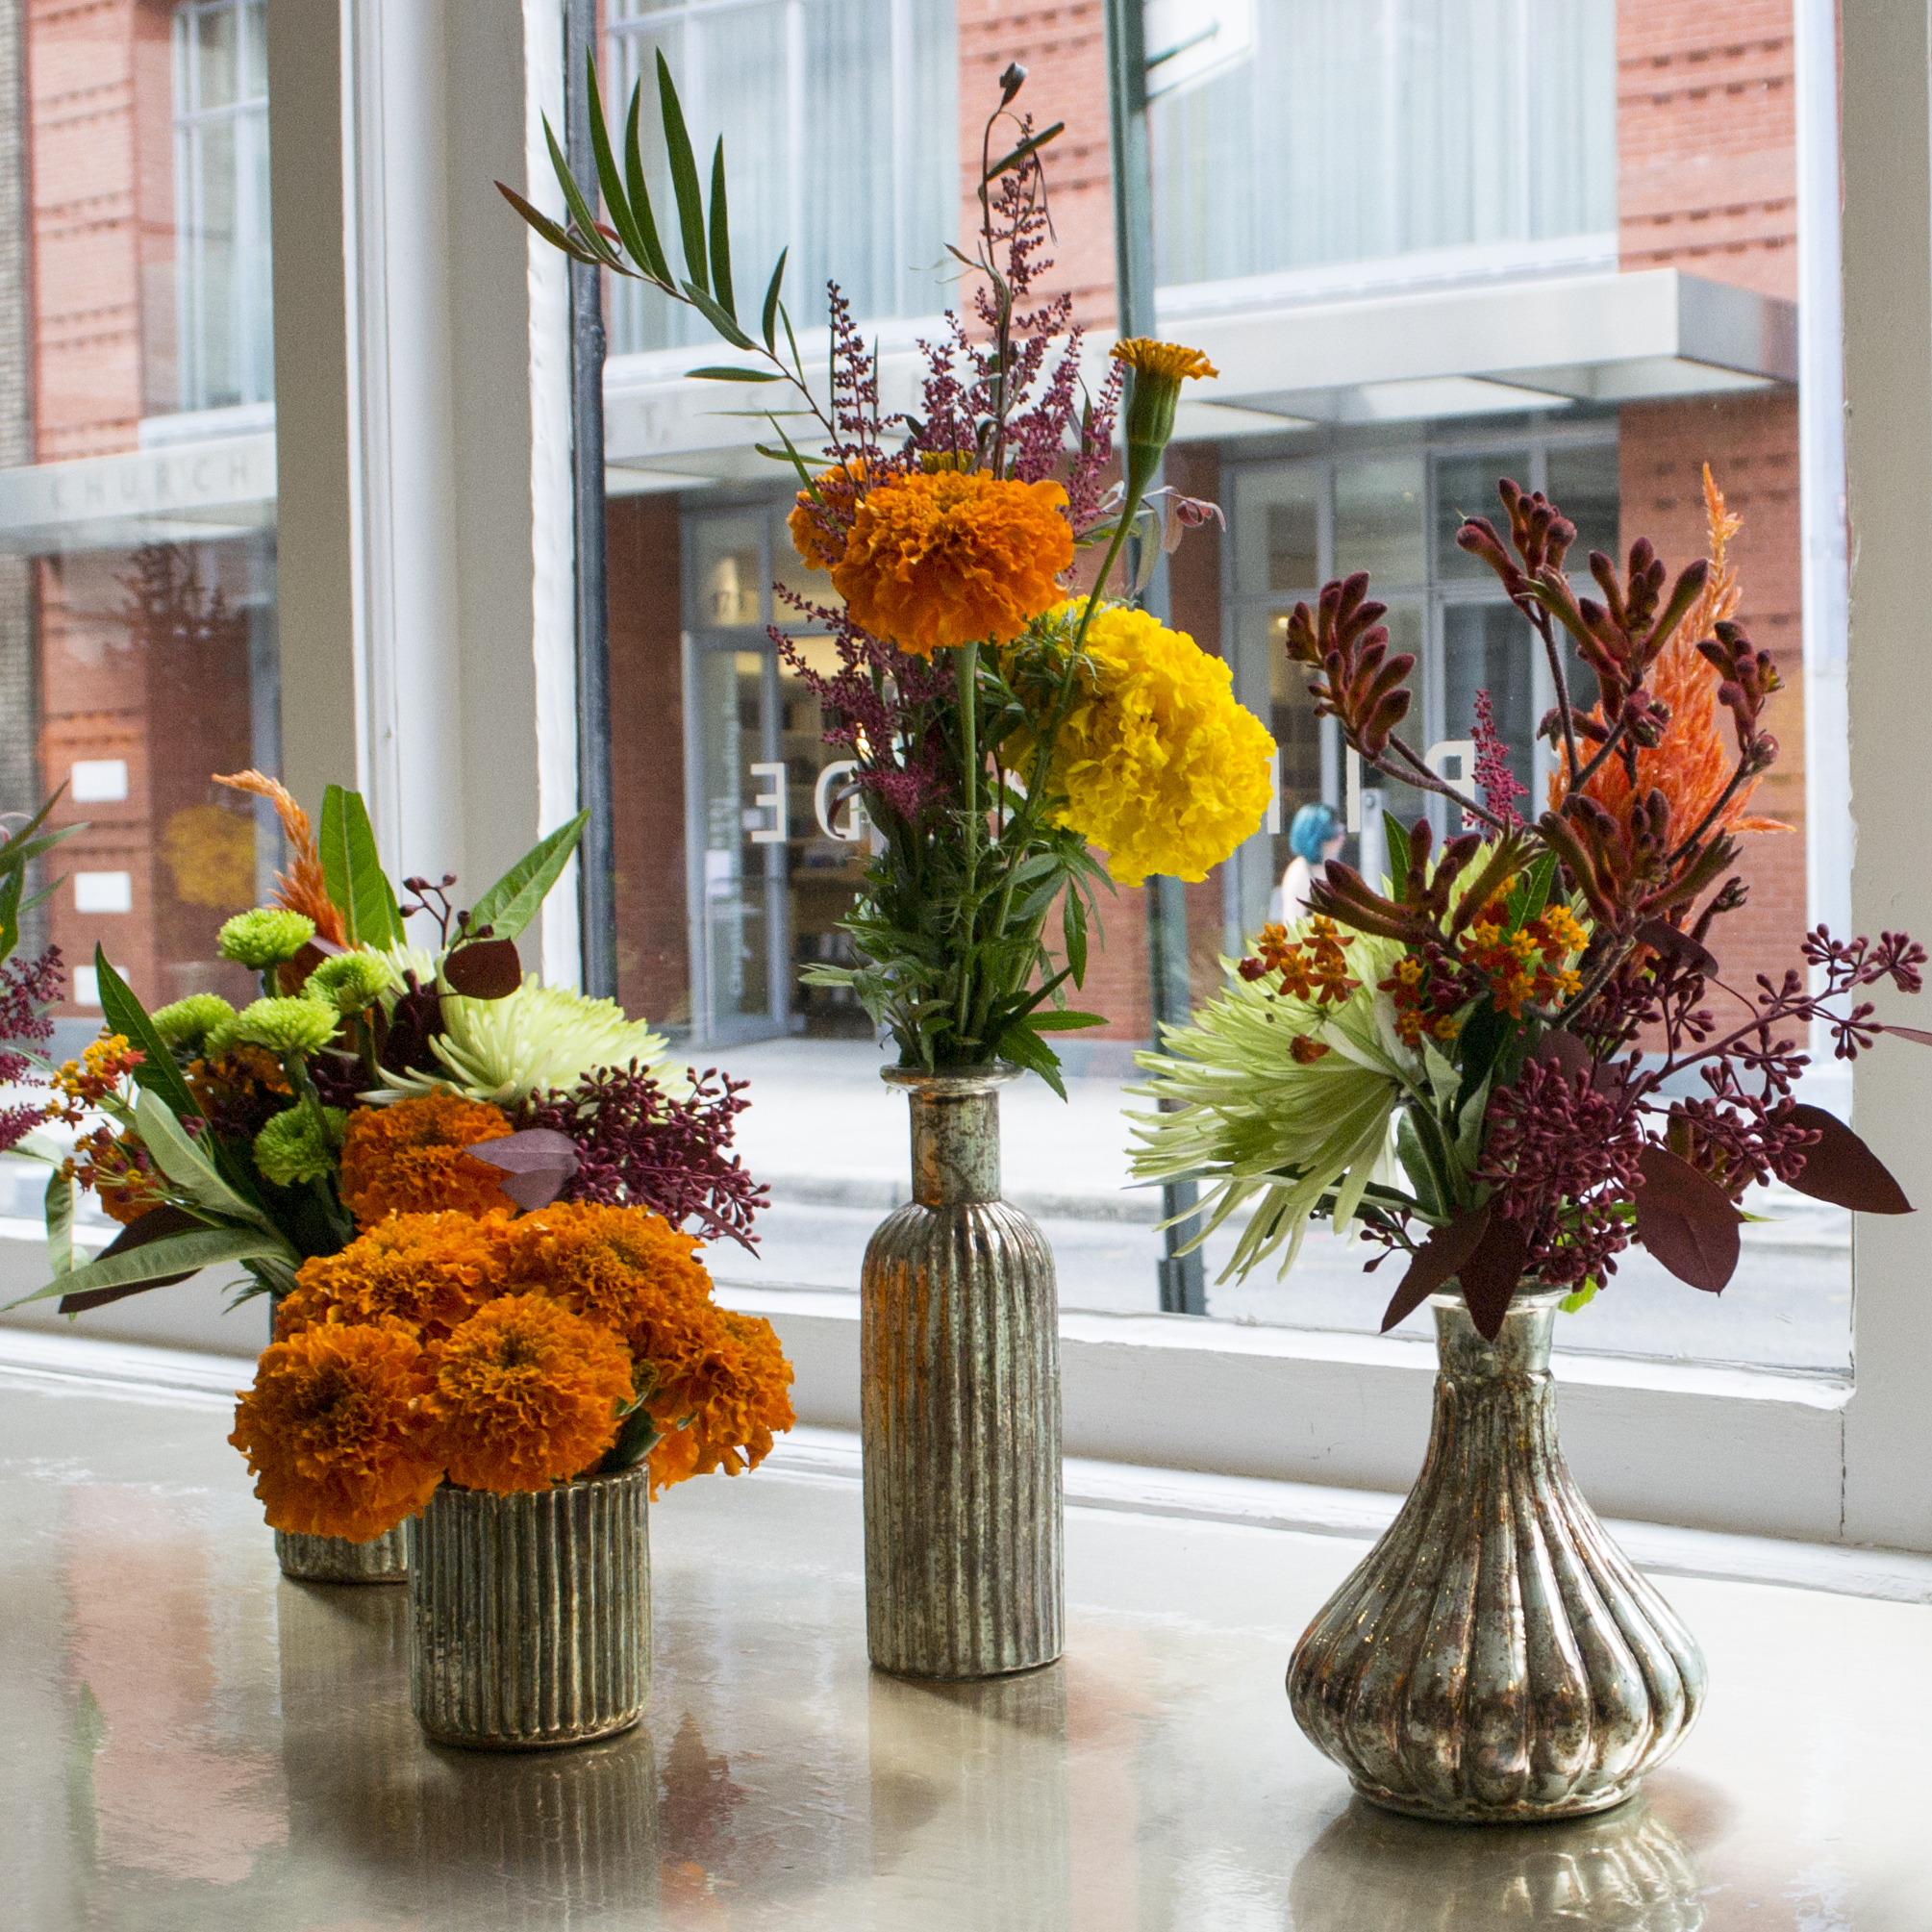 Sample flower arrangements from  our amazing flower guy Paul !